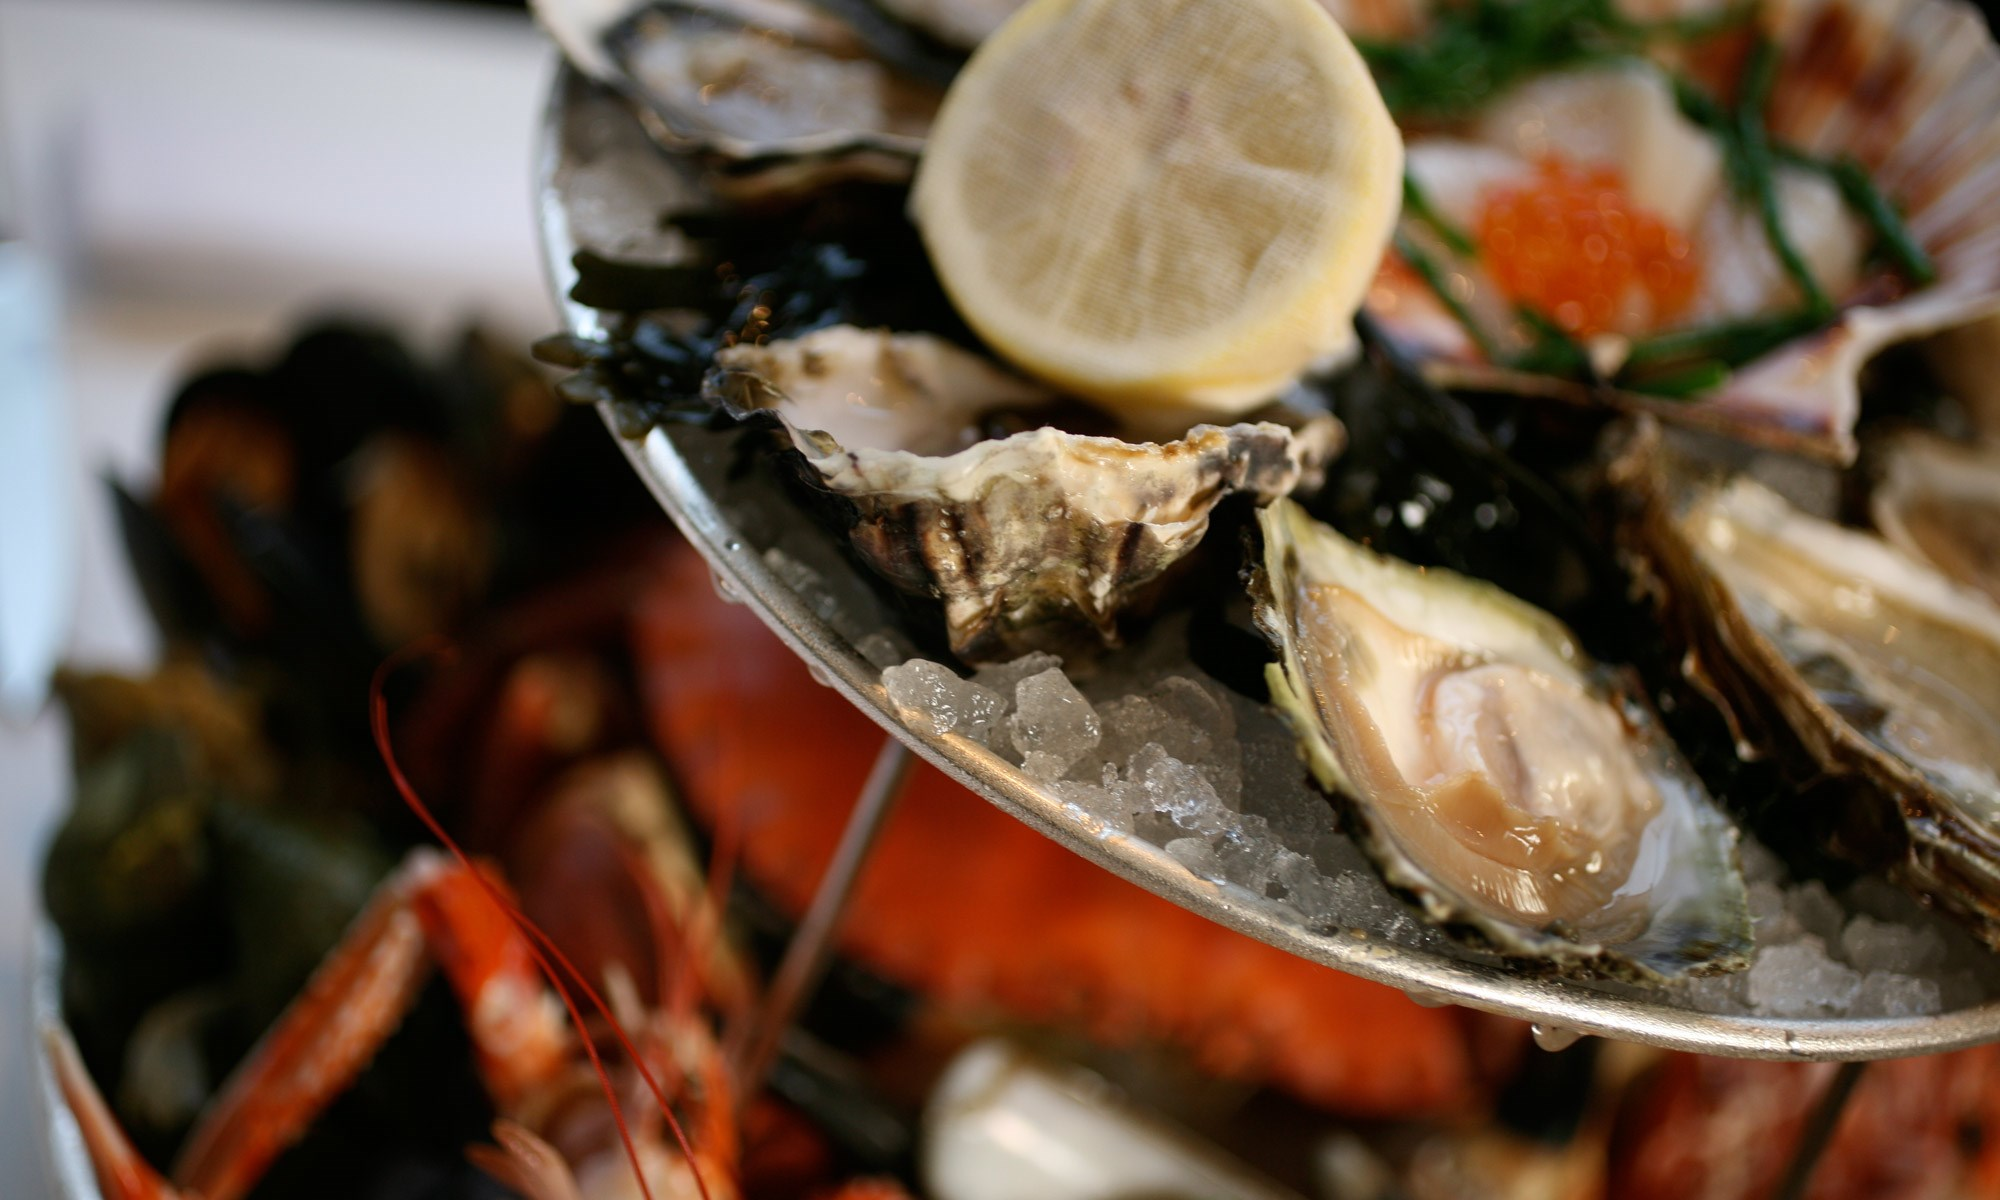 Fruits de Mer Platter at Scott's in Mayfair, London